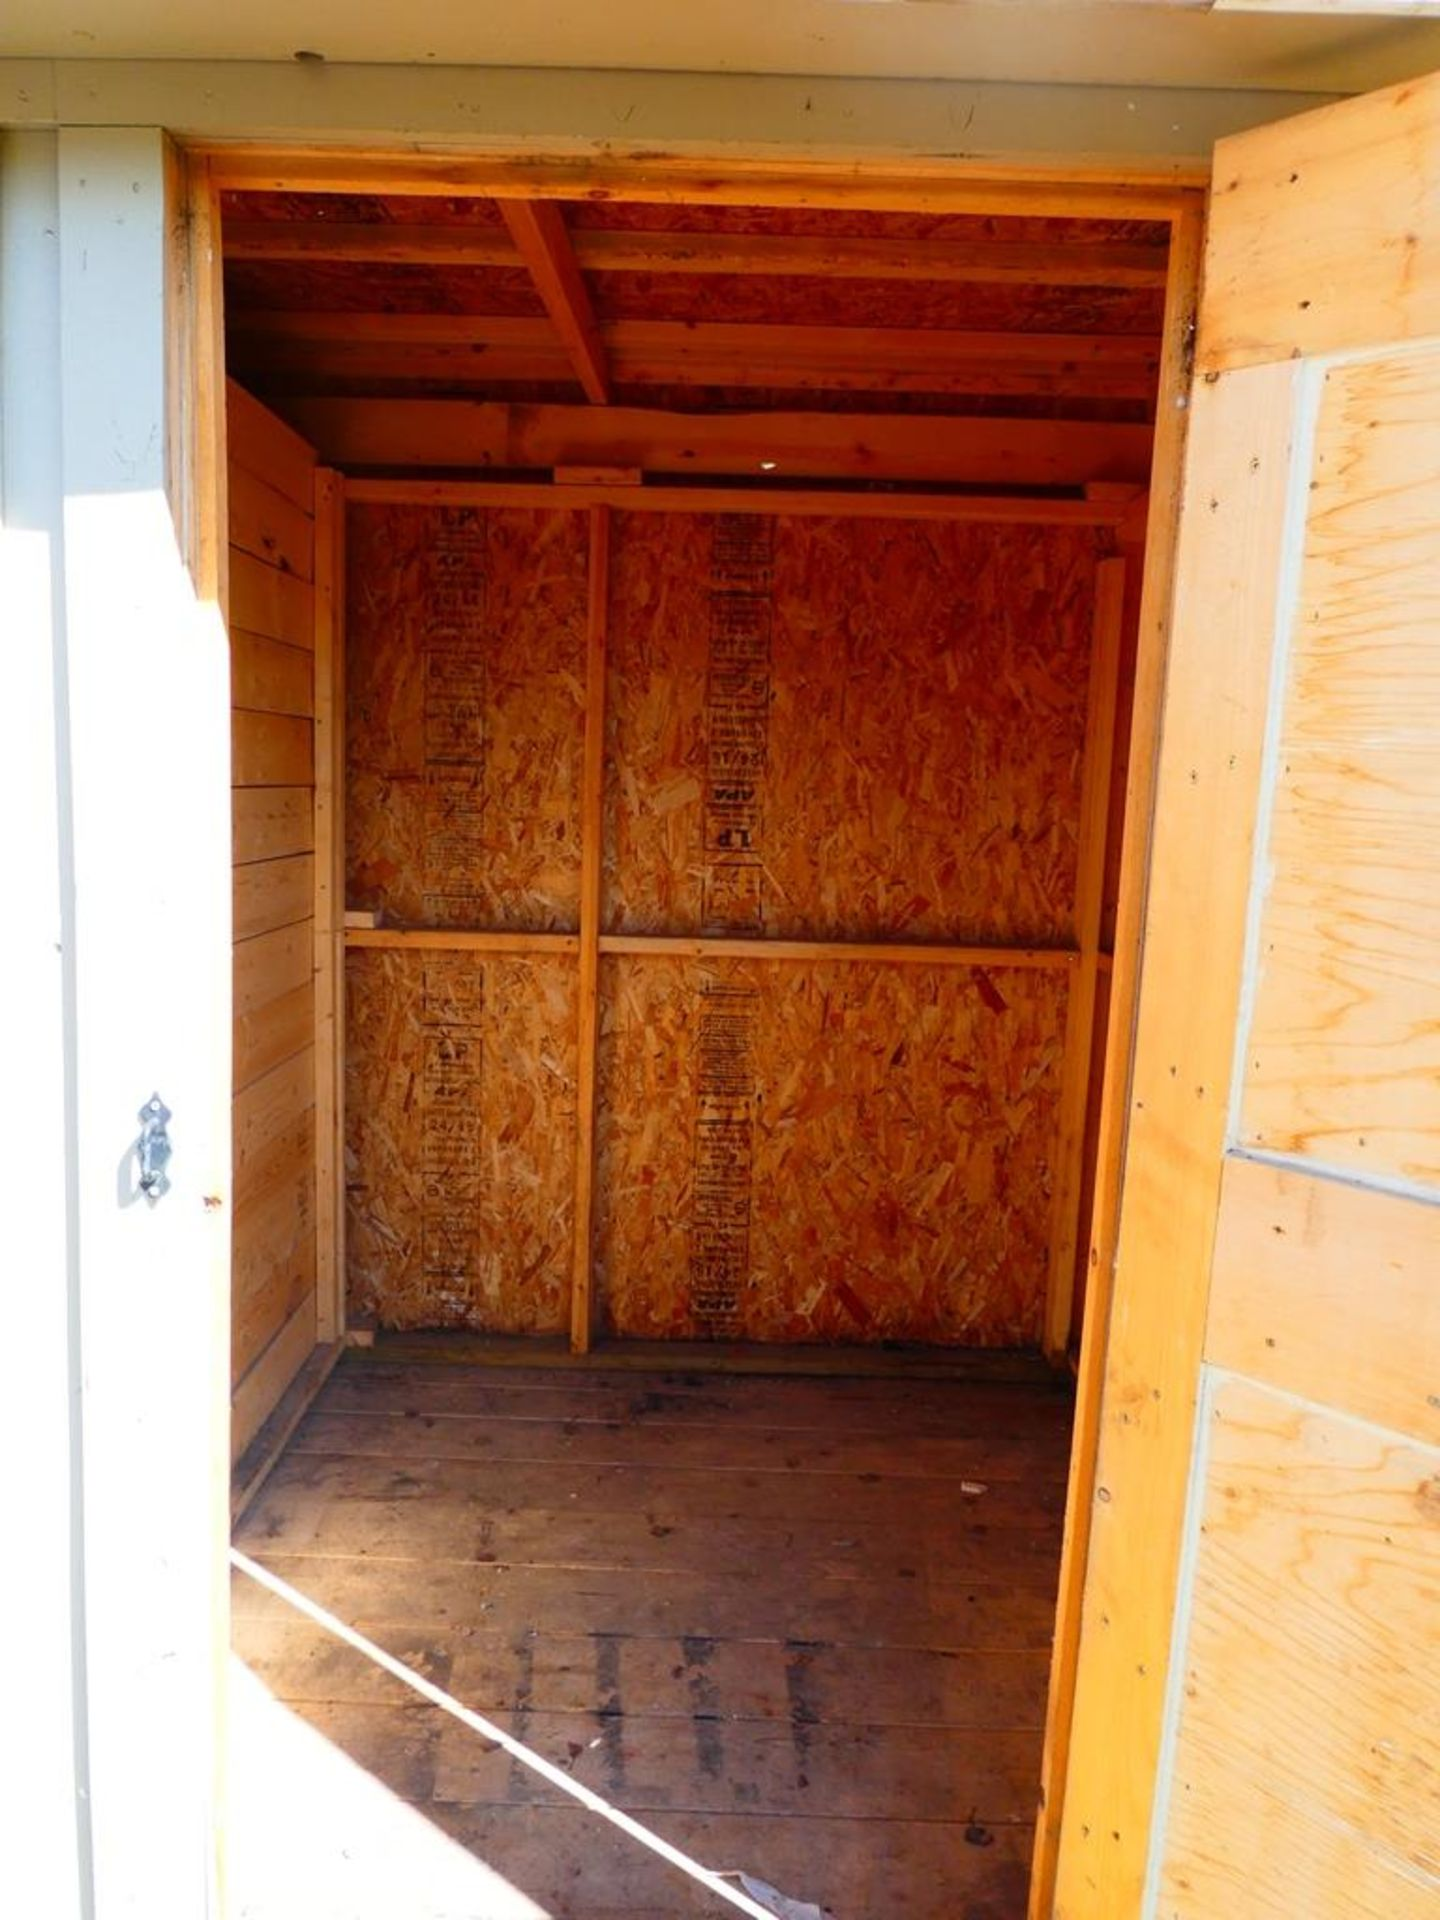 HAND CRAFTED 2 COMPARTMENT STORAGE BUILDING 6'X12' - Image 4 of 4